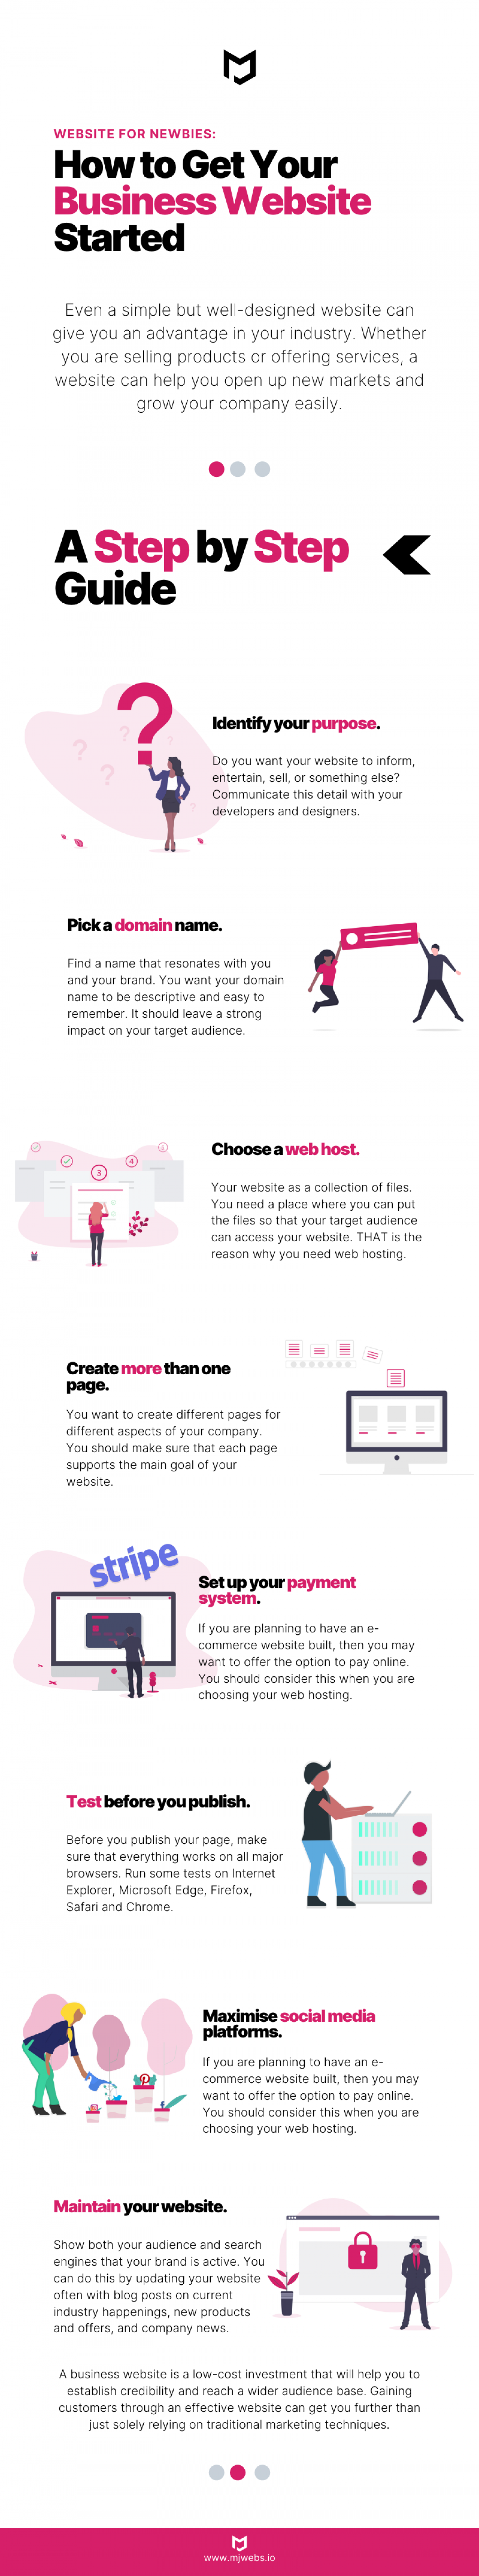 Website for Newbies: How to Get Your Business Website Started Infographic